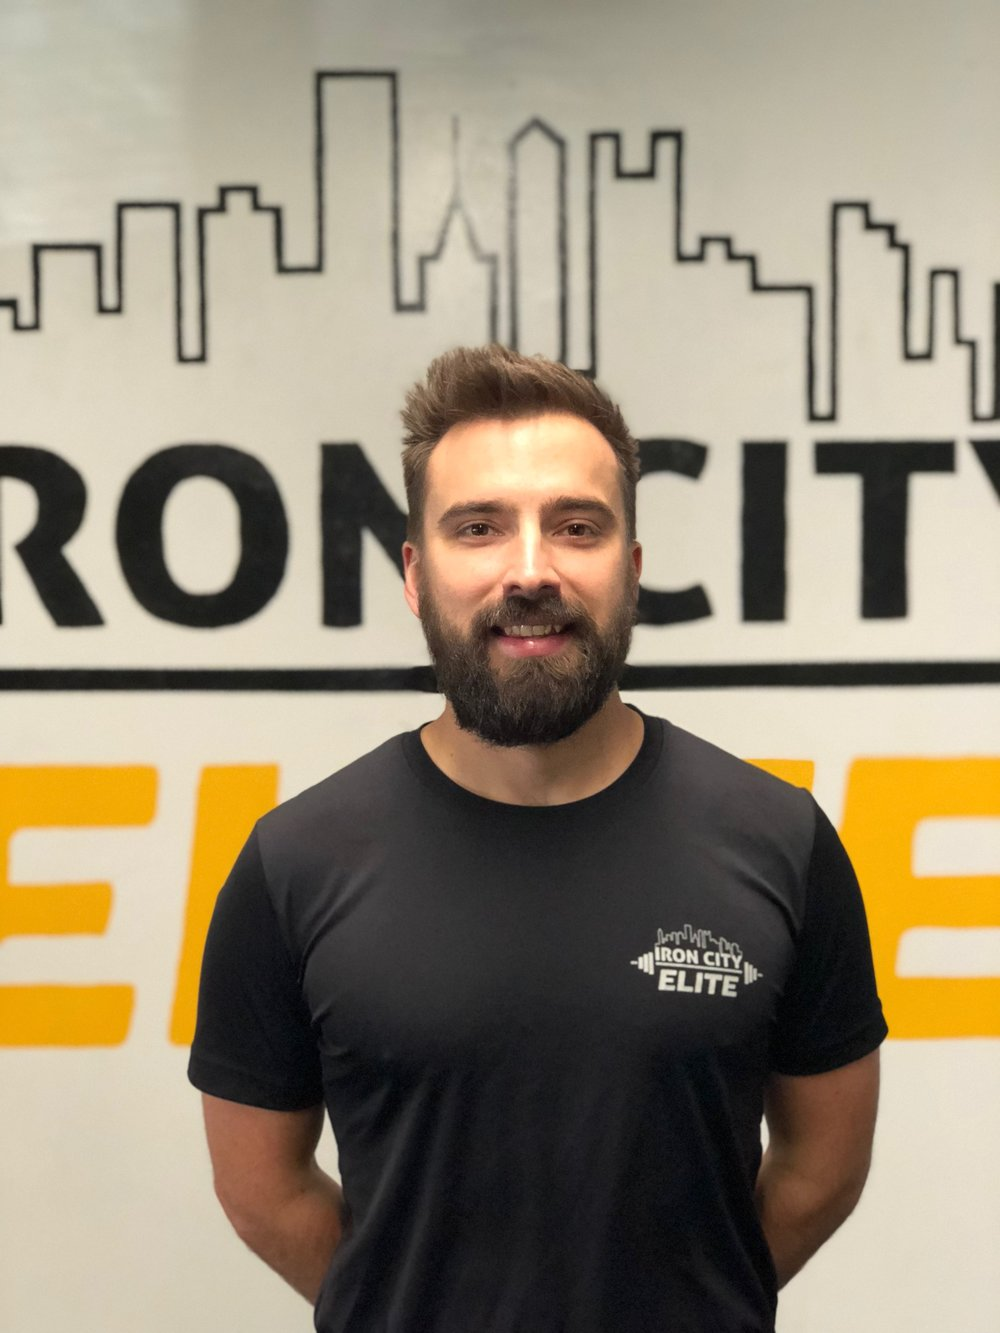 Dylan Mudlo, MS, CSCS    Fitness and Performance Coach   An avid runner himself, Dylan specializes in running specific training programs among other specialties. Those include cross-training for endurance athletes, youth strength & conditioning, small group training and one-on-one training.